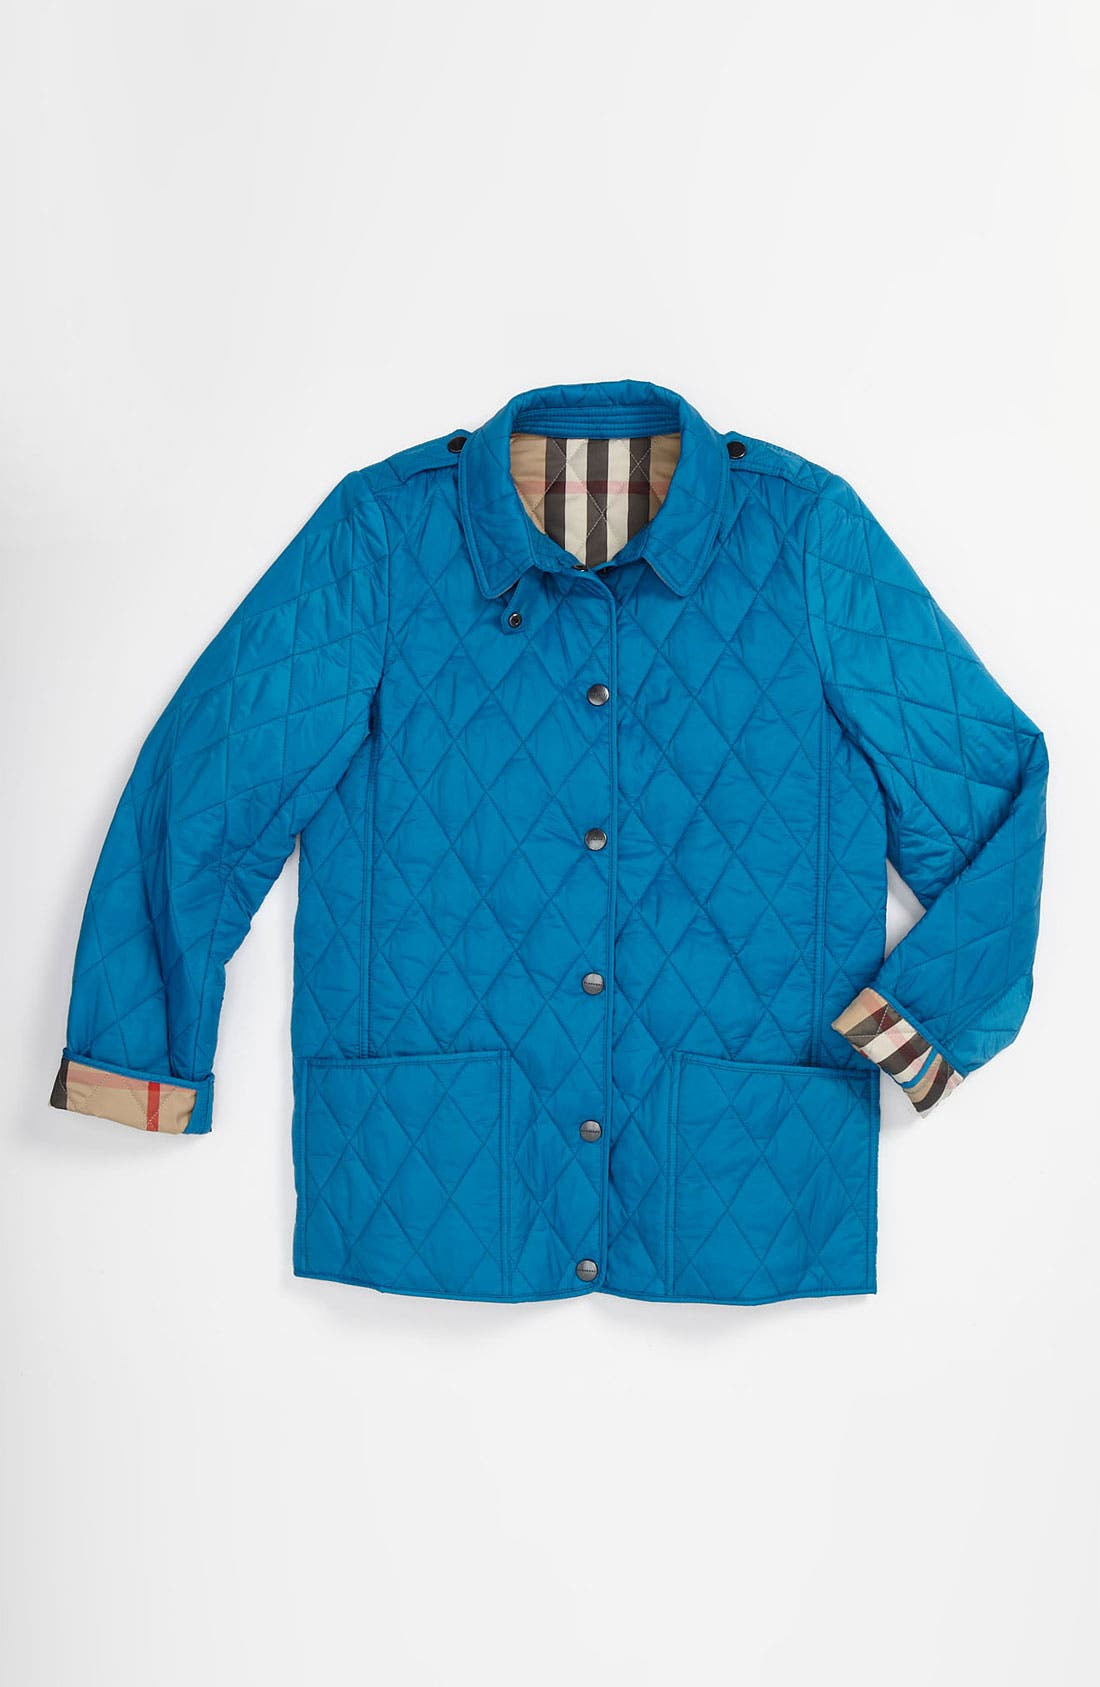 Alternate Image 1 Selected - Burberry 'Mini Pirmont' Quilted Jacket (Little Girls & Big Girls)